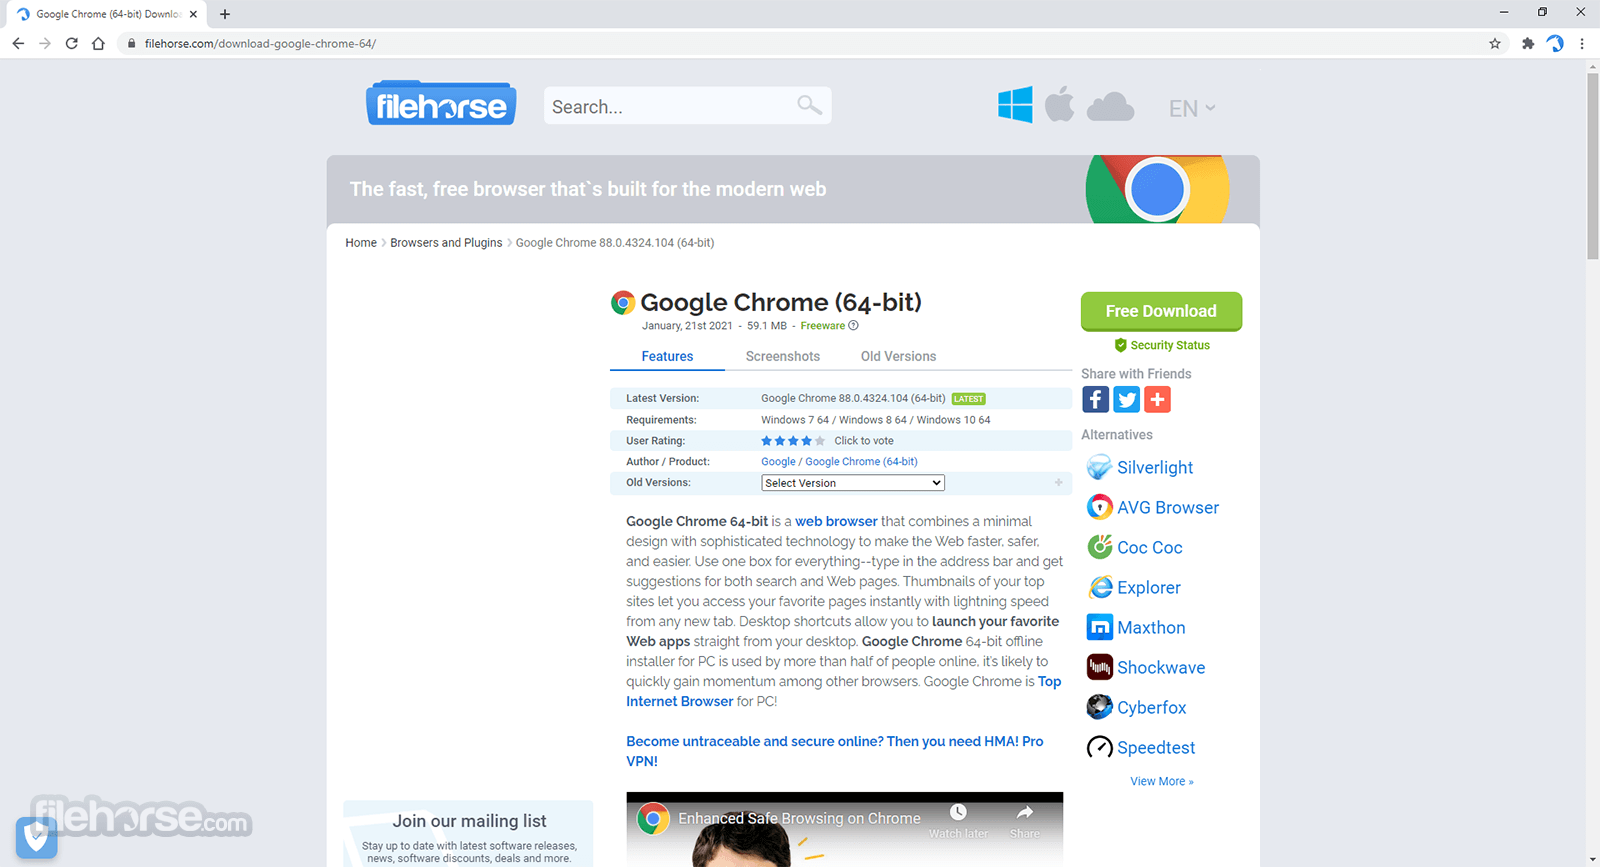 Google Chrome 67.0.3396.99 (32-bit) Screenshot 1